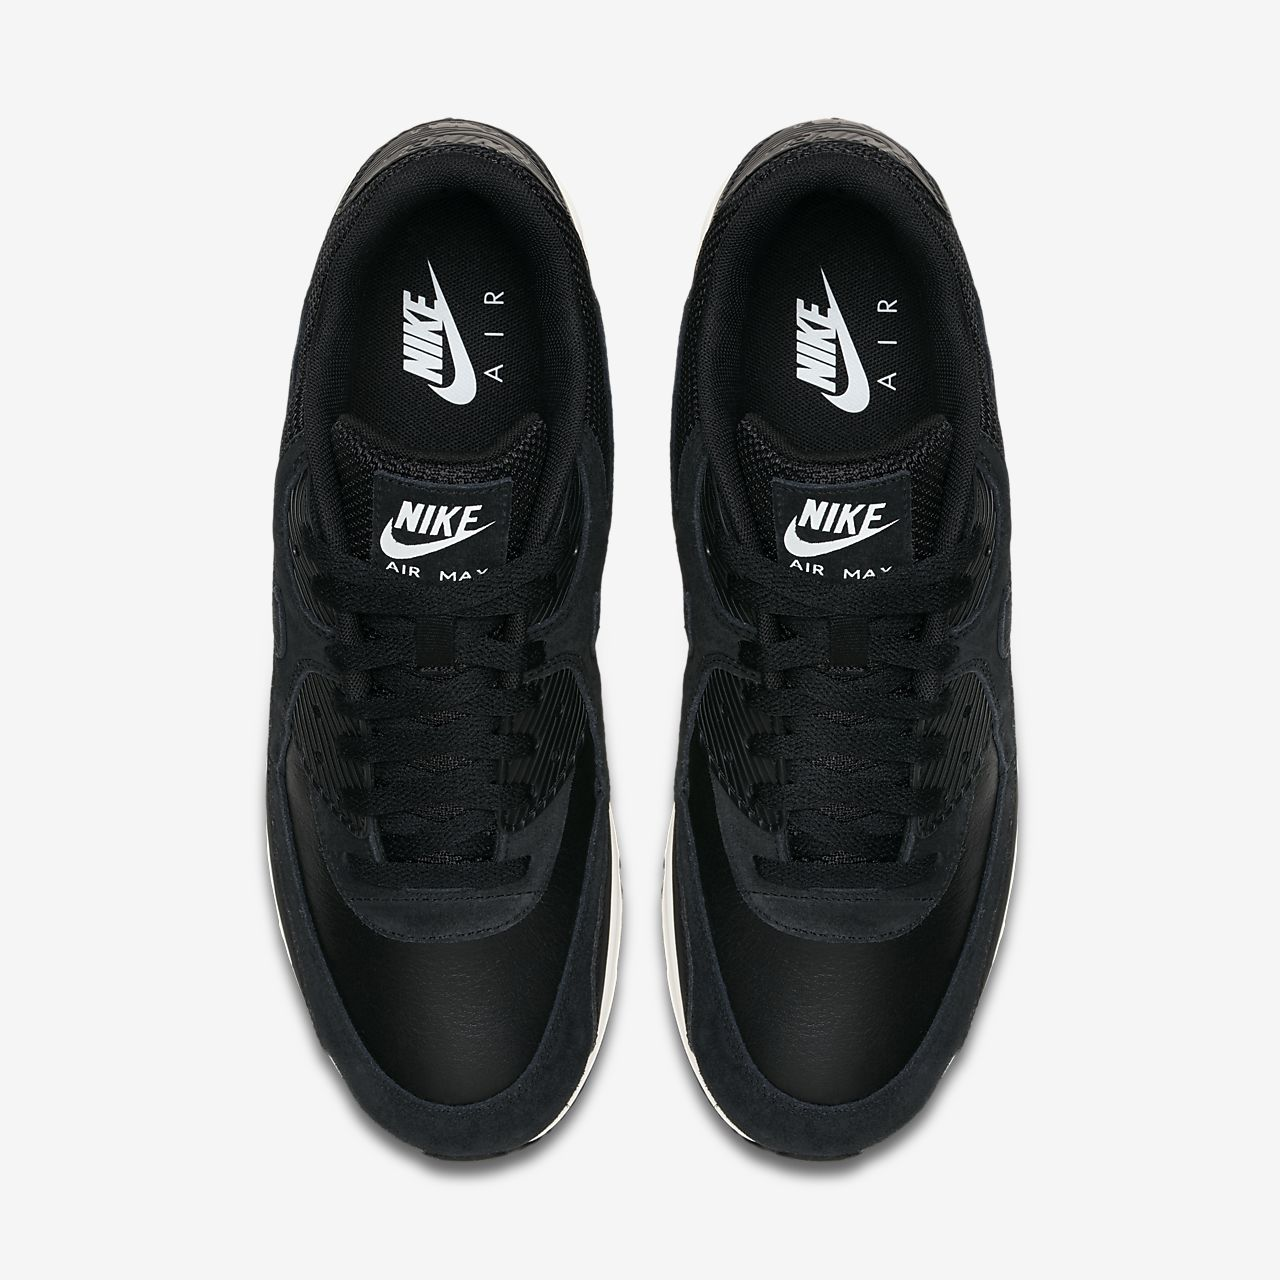 mannen's Nike Air Max 90 BlackSummit White Trainers On Sale